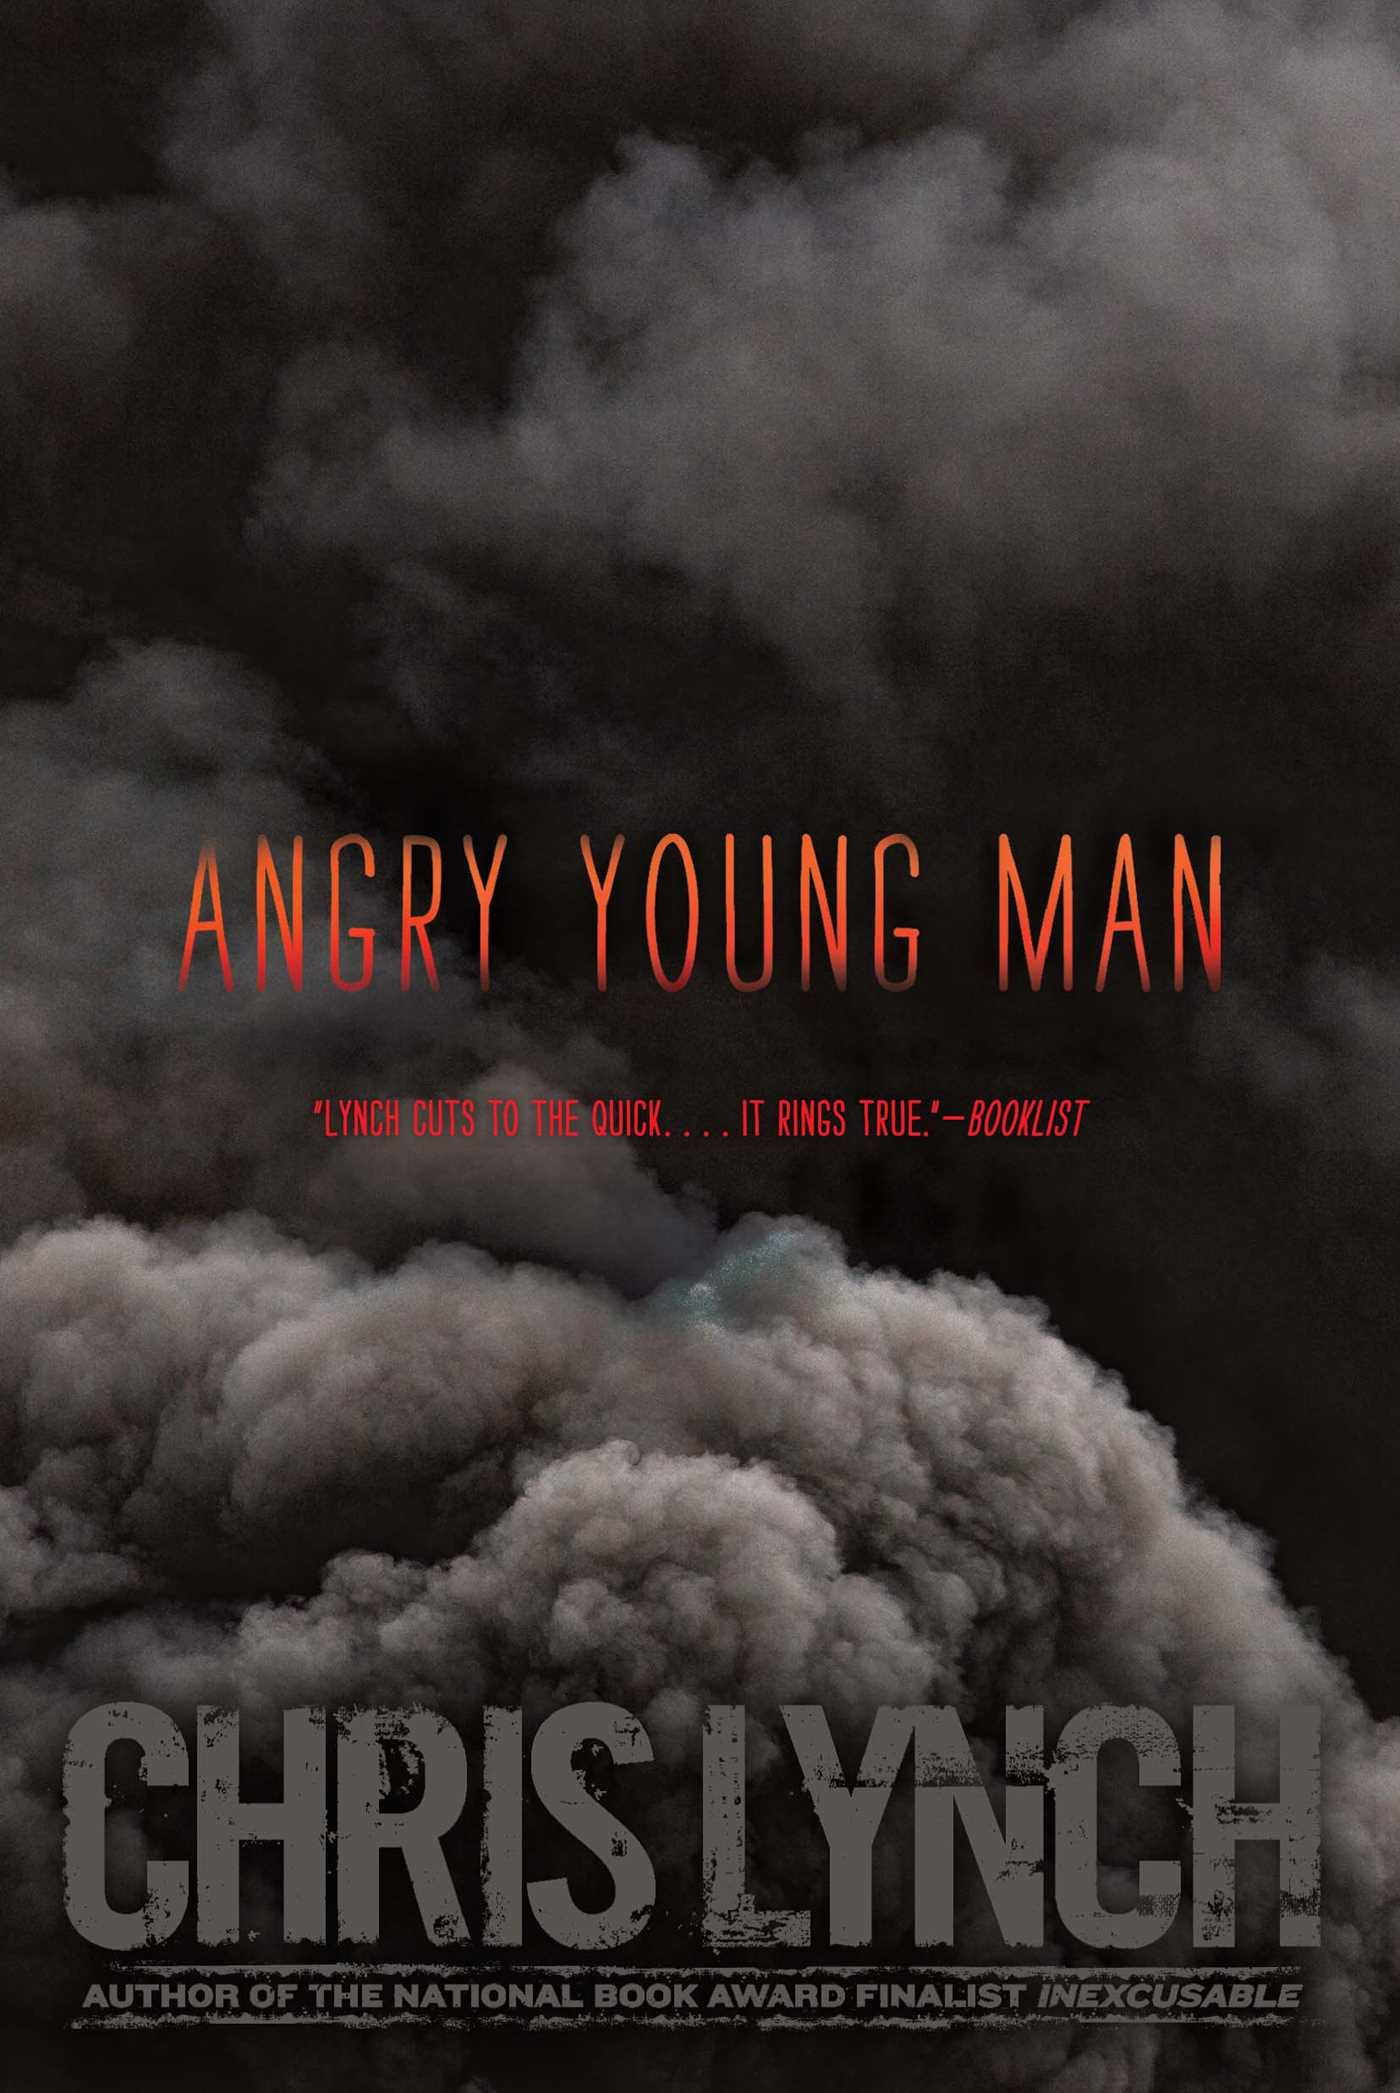 Angry young man 9781442454194 hr